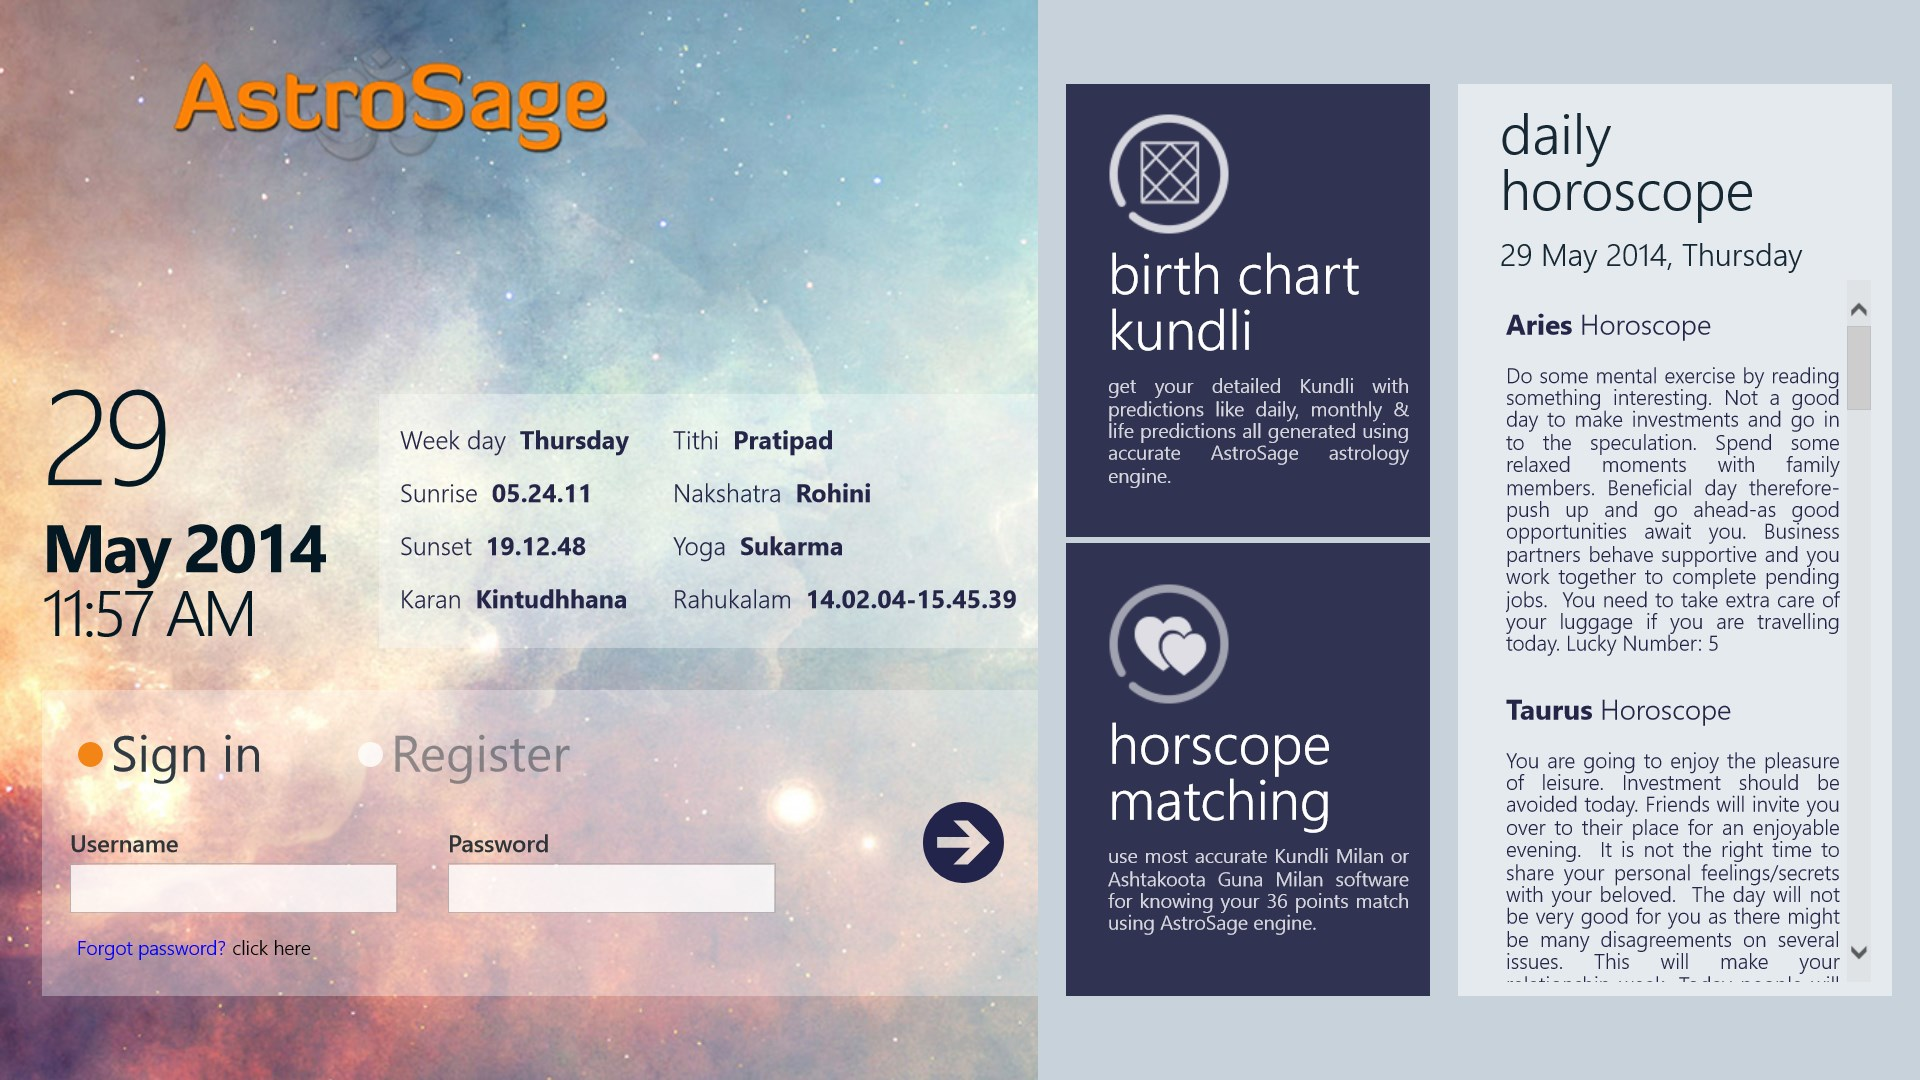 Kundli match making software download gratuito per Windows 7 64 bit